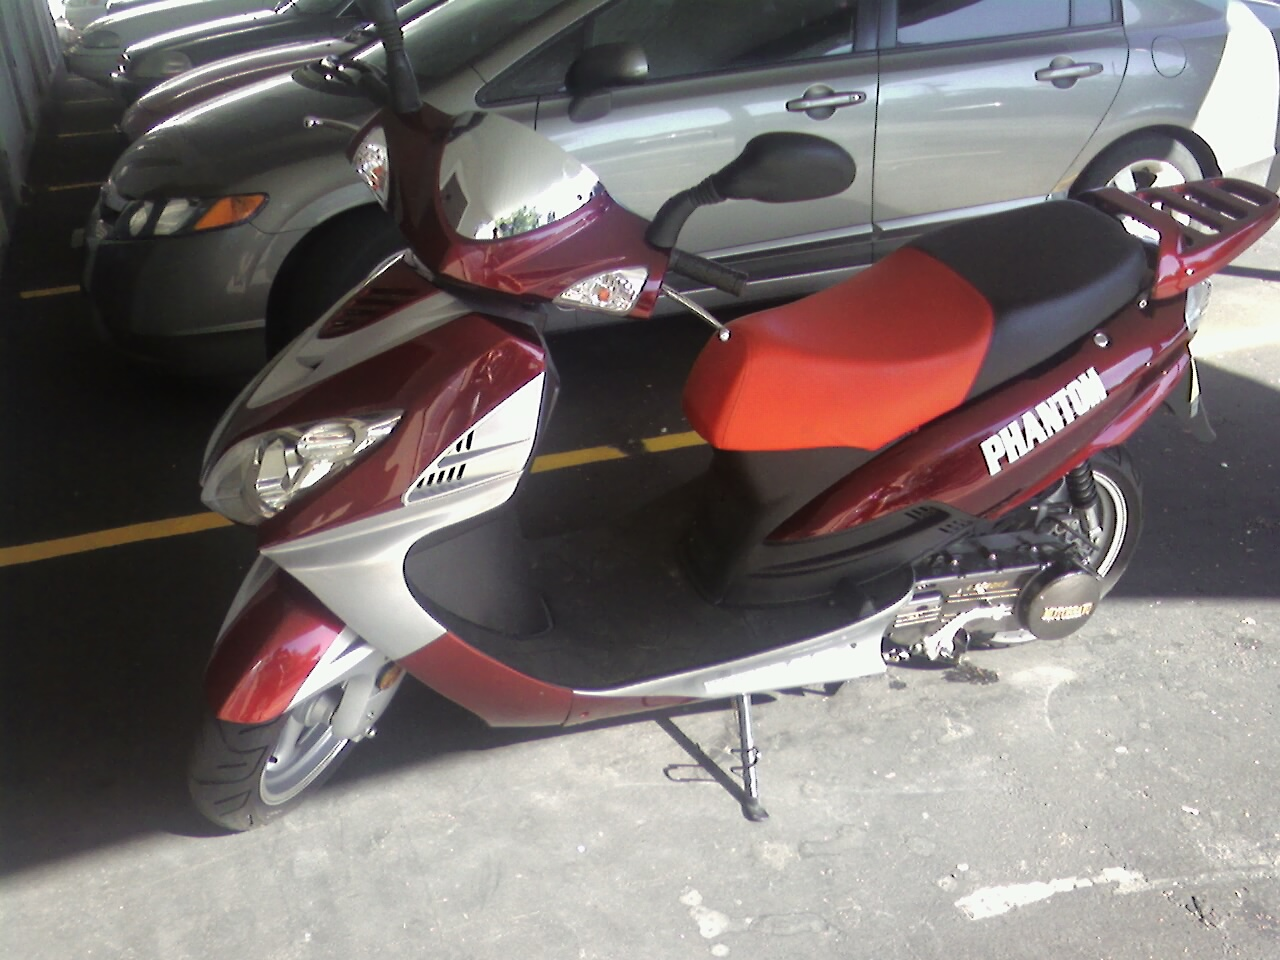 My old scooter